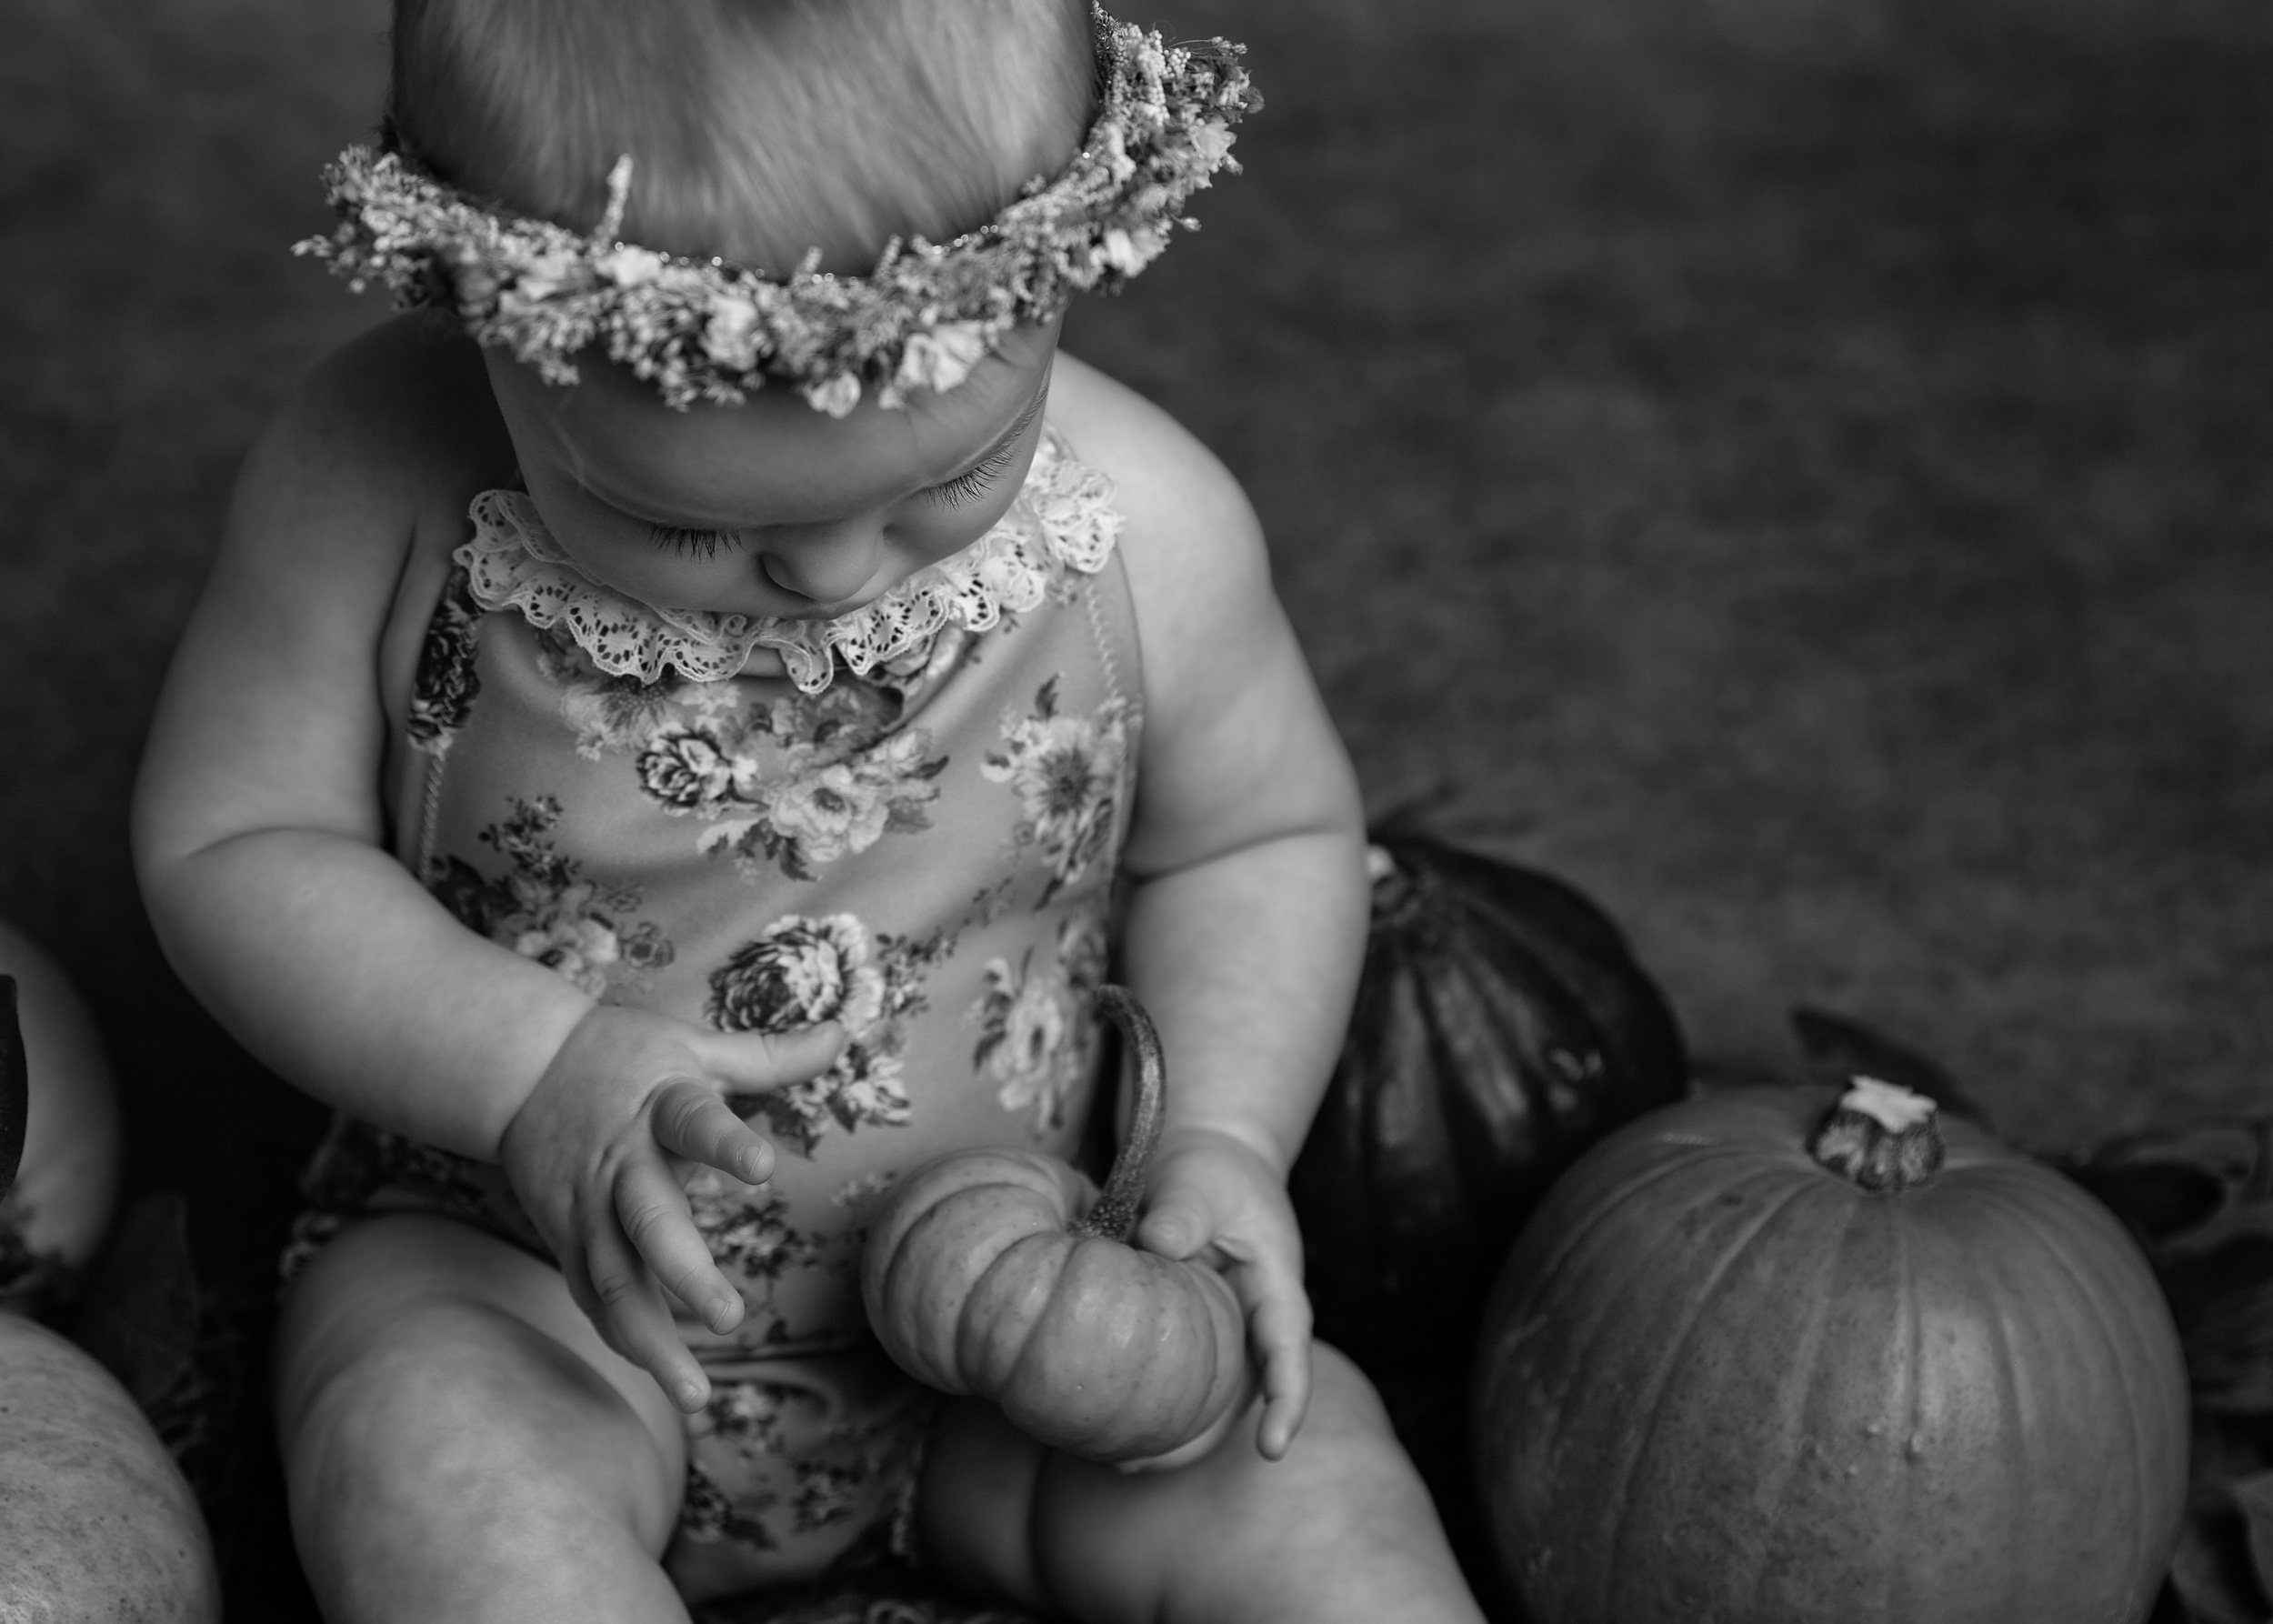 6 month old baby girl holding a pumpkin taken during a milestone portrait session in Sandbach, Cheshire